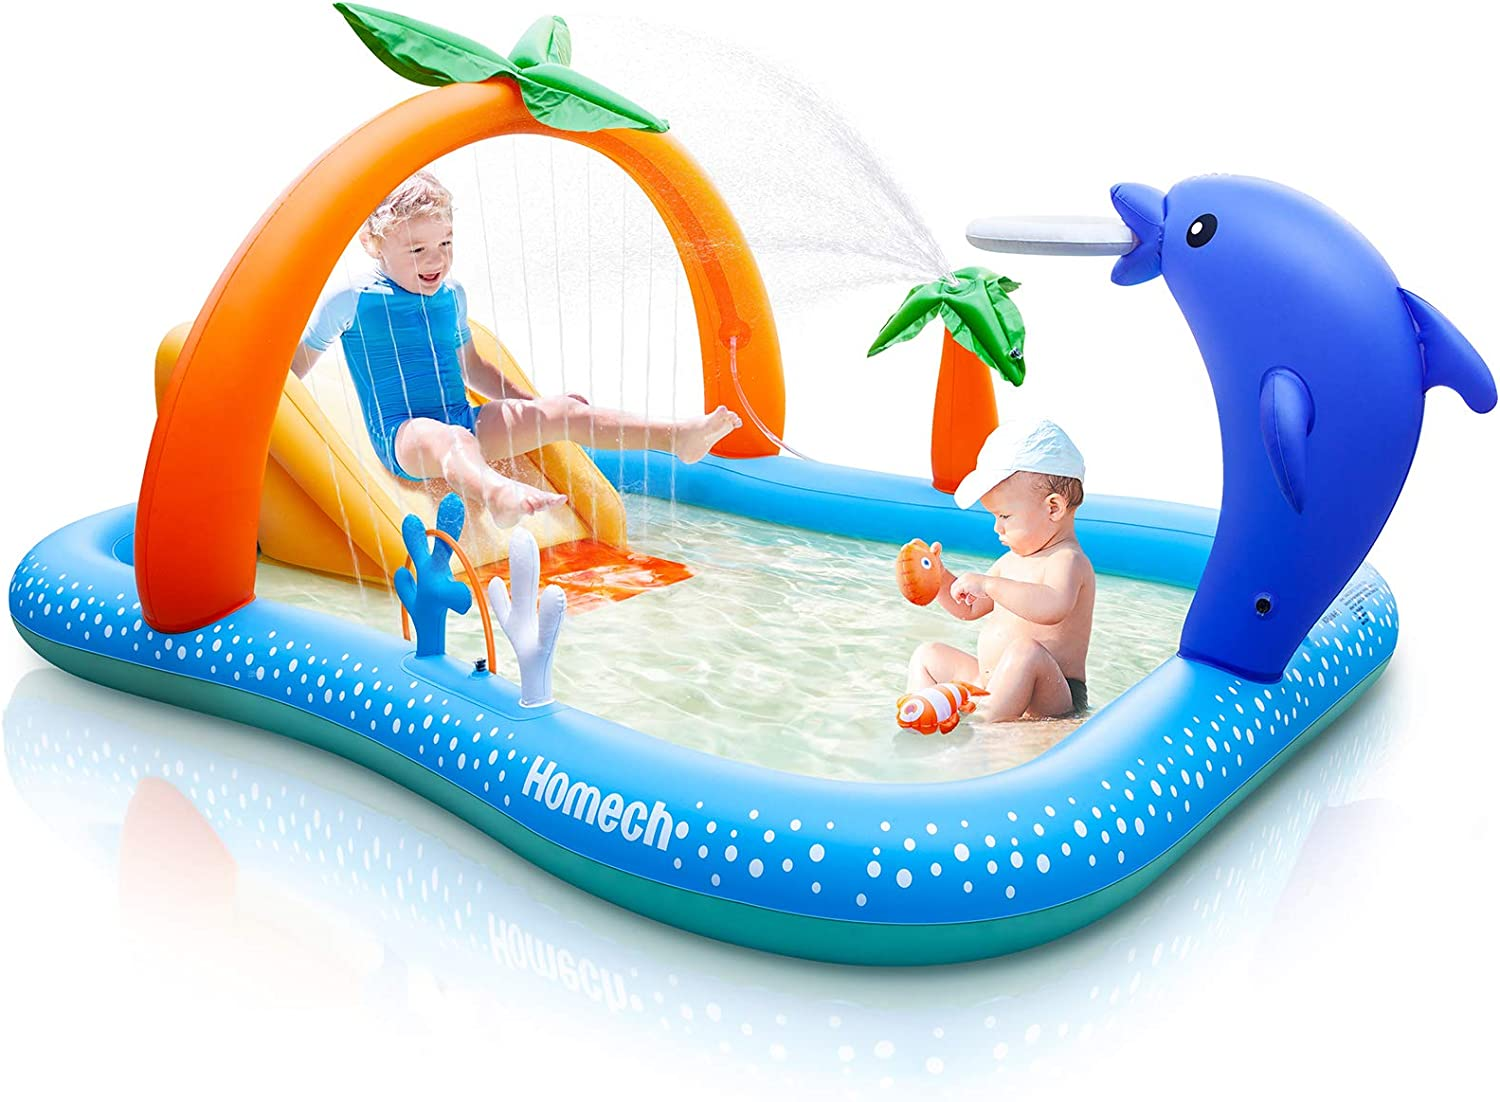 Homech Inflatable Play Center Pool for Kids for .99